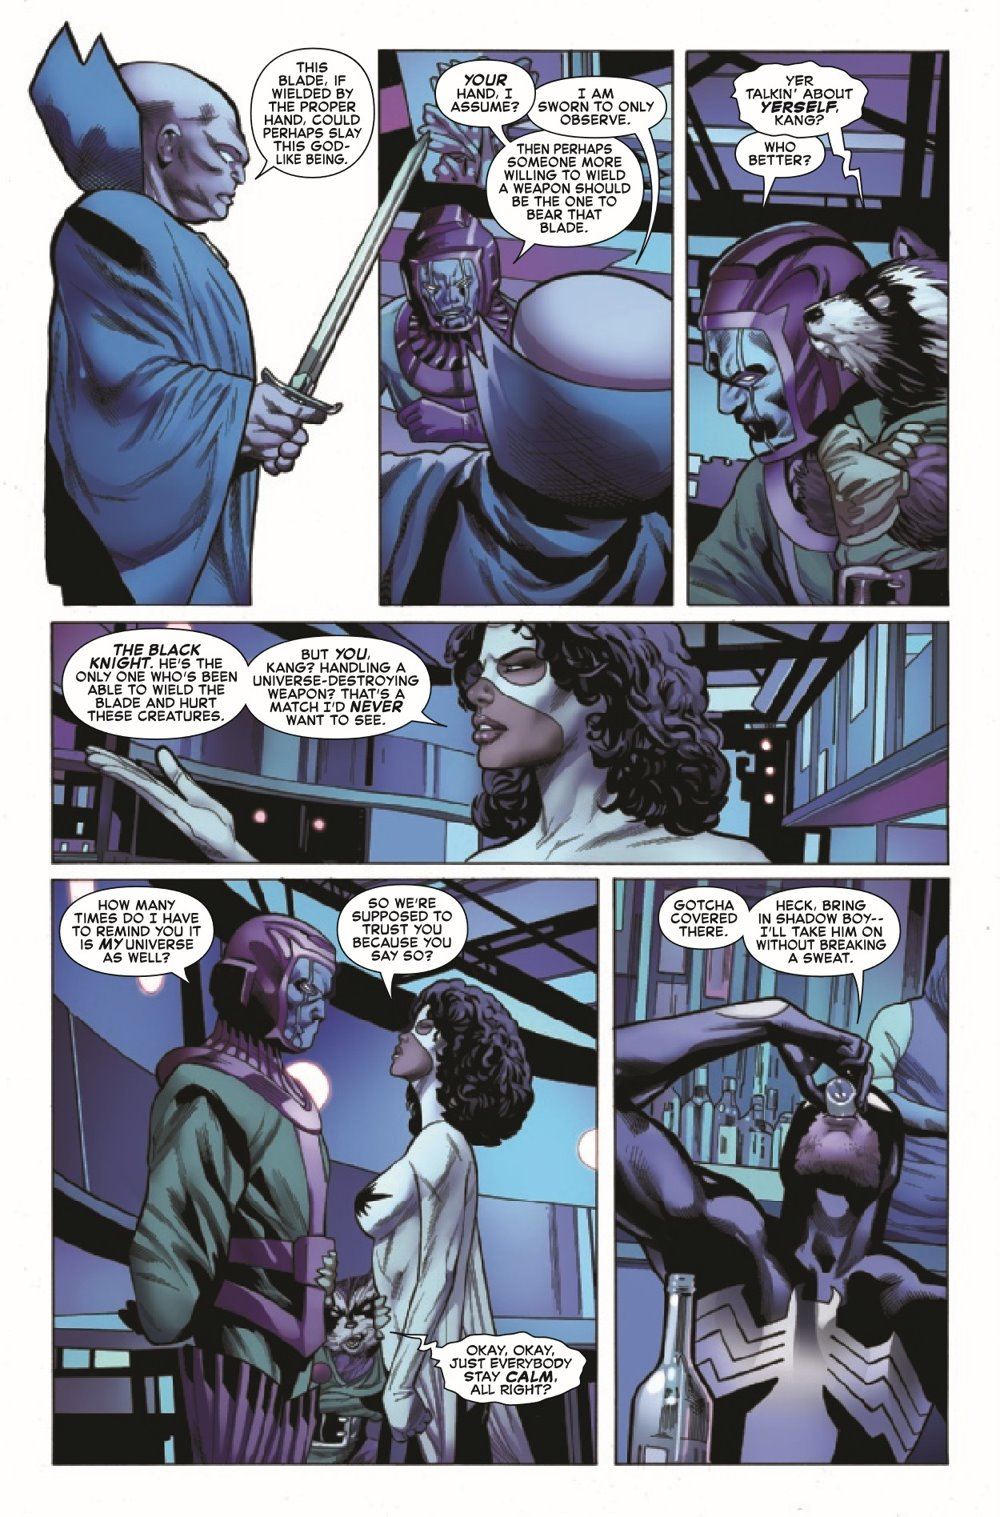 SYMBIOTESMKIB2020005_Preview-4 ComicList Previews: SYMBIOTE SPIDER-MAN KING IN BLACK #5 (OF 5)